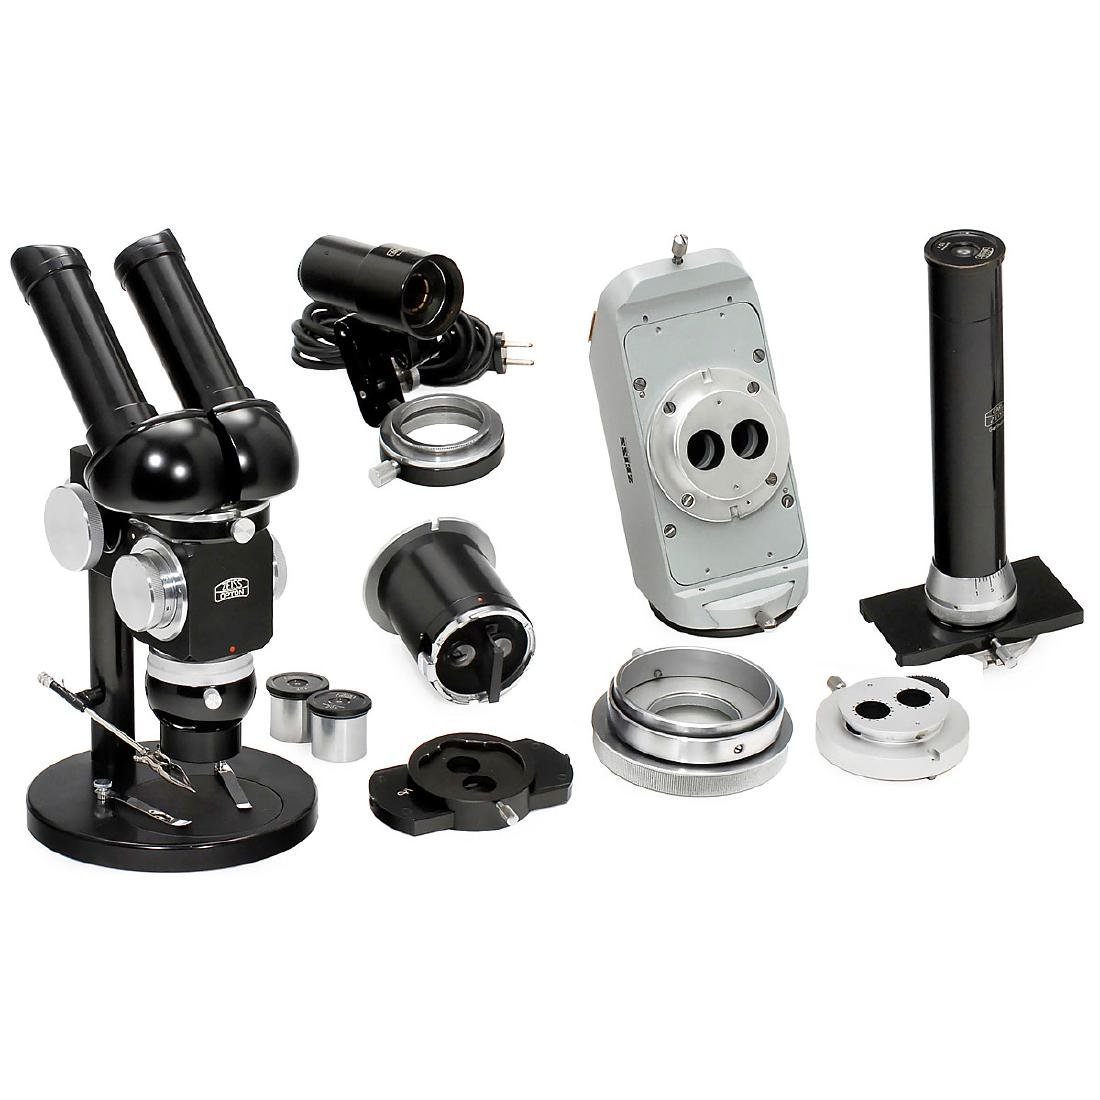 Zeiss Opton Stereo Microscope with Accessories